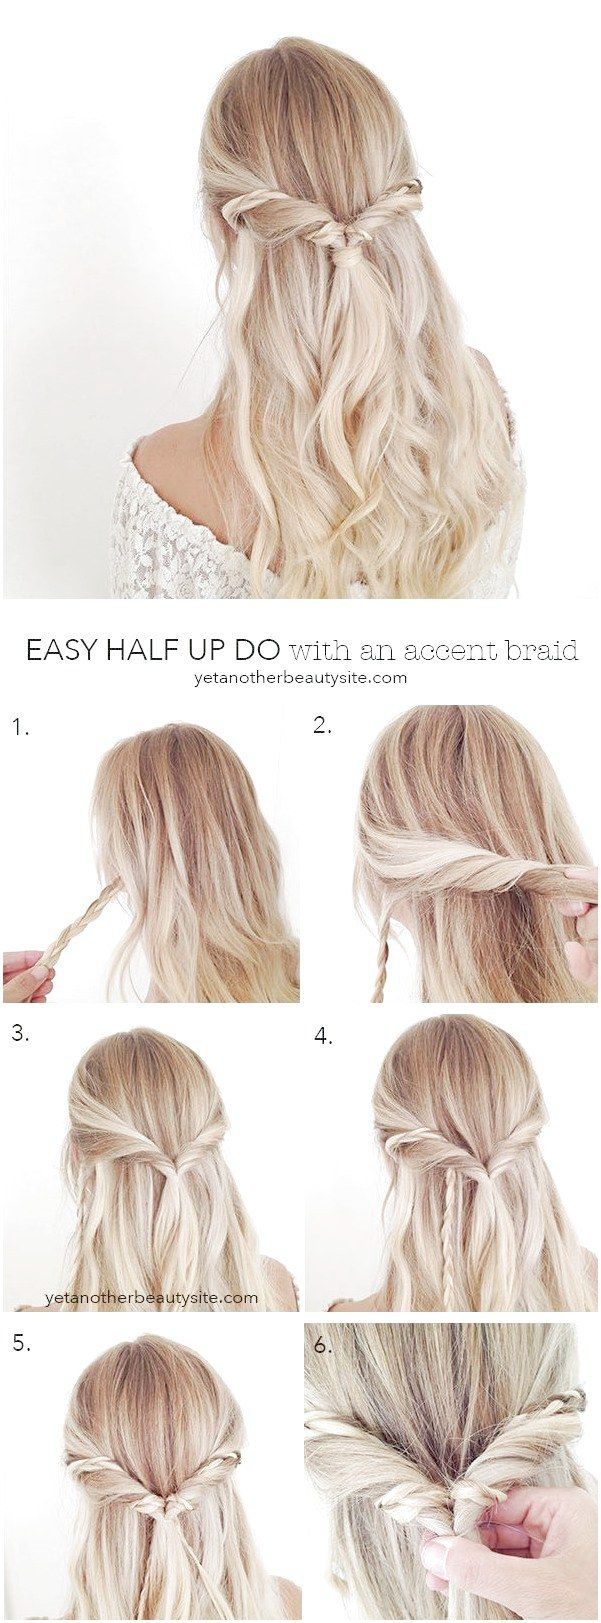 Pin on Easy hair updos